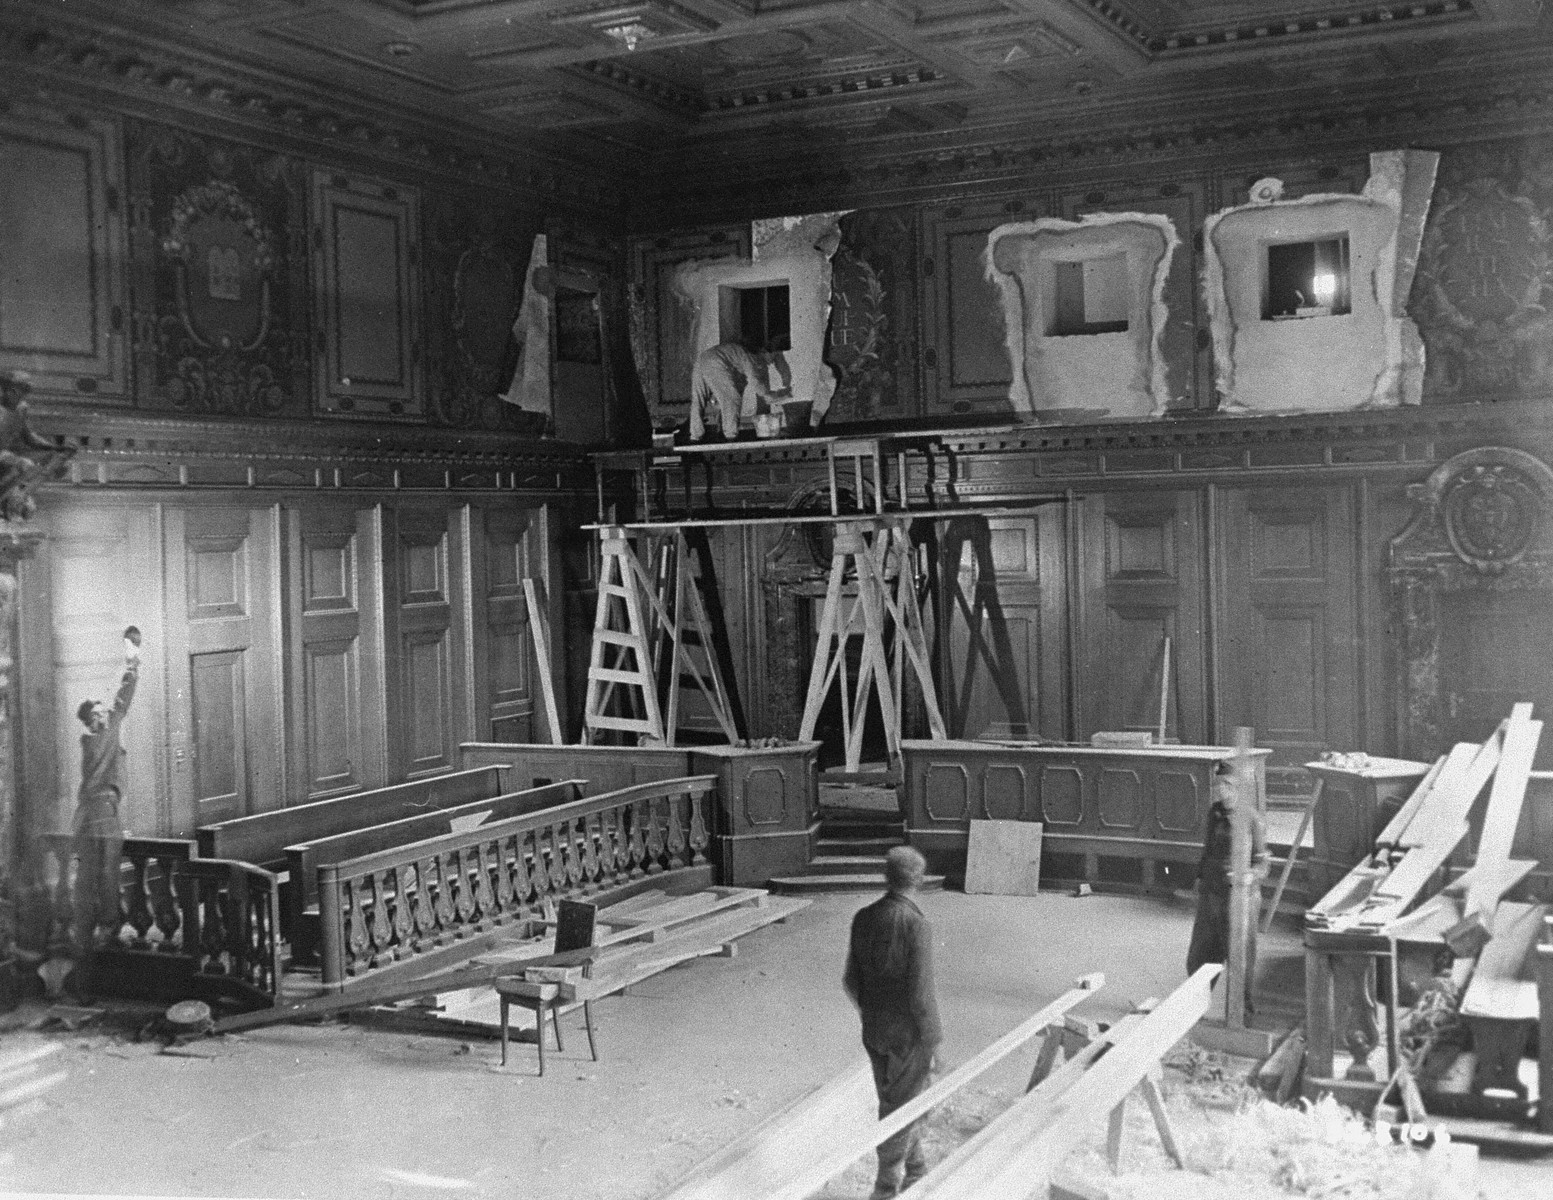 Repairs and improvements are made to the courtroom where the International Military Tribunal trial of war criminals will be held.  The holes in the walls at the top will house radio commentators and public address operators.